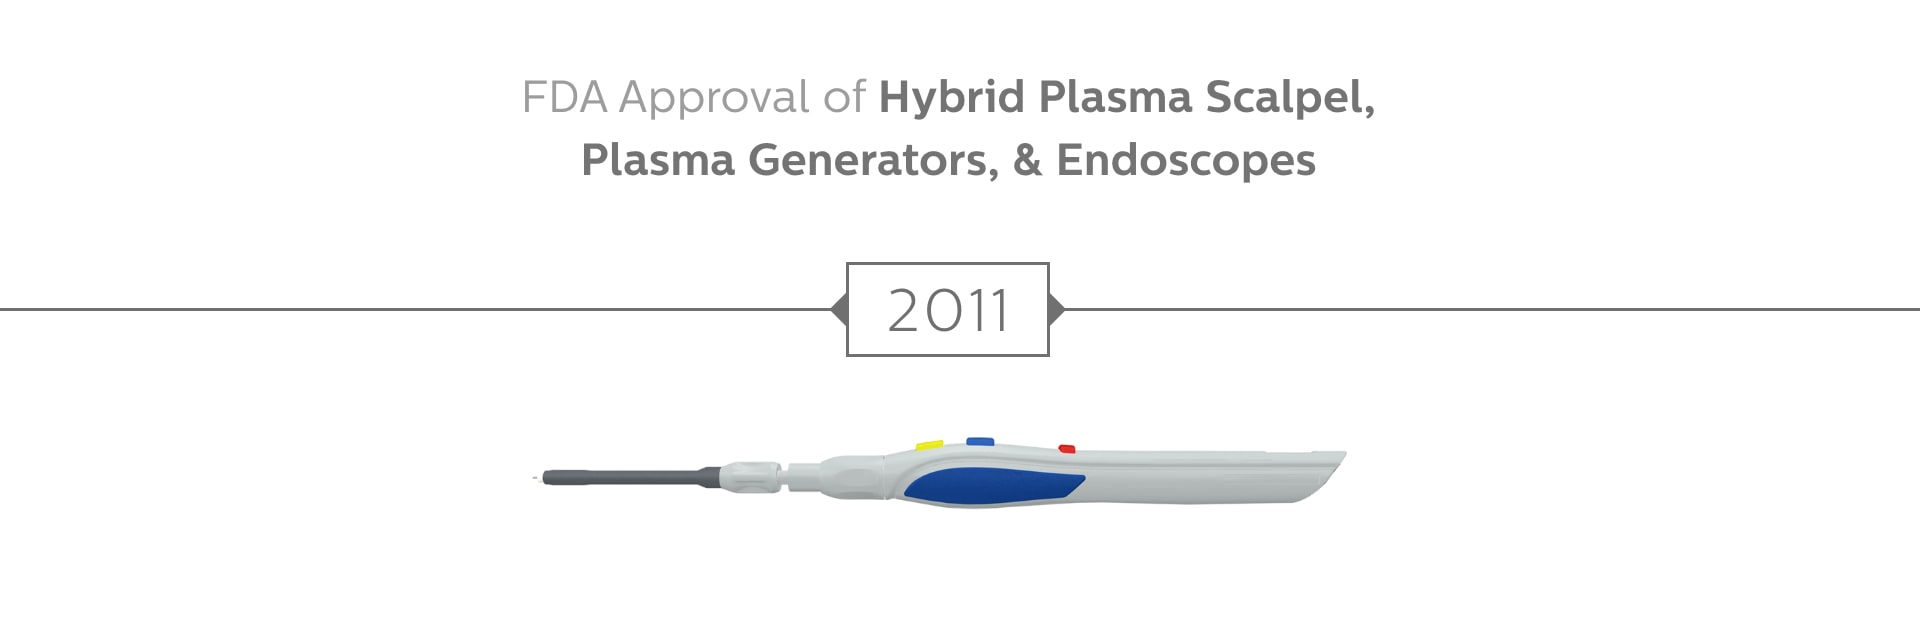 FDA Approval was awarded to USMI for its Hybrid Plasma Scalpel, Plasma Generators and Endoscopes.